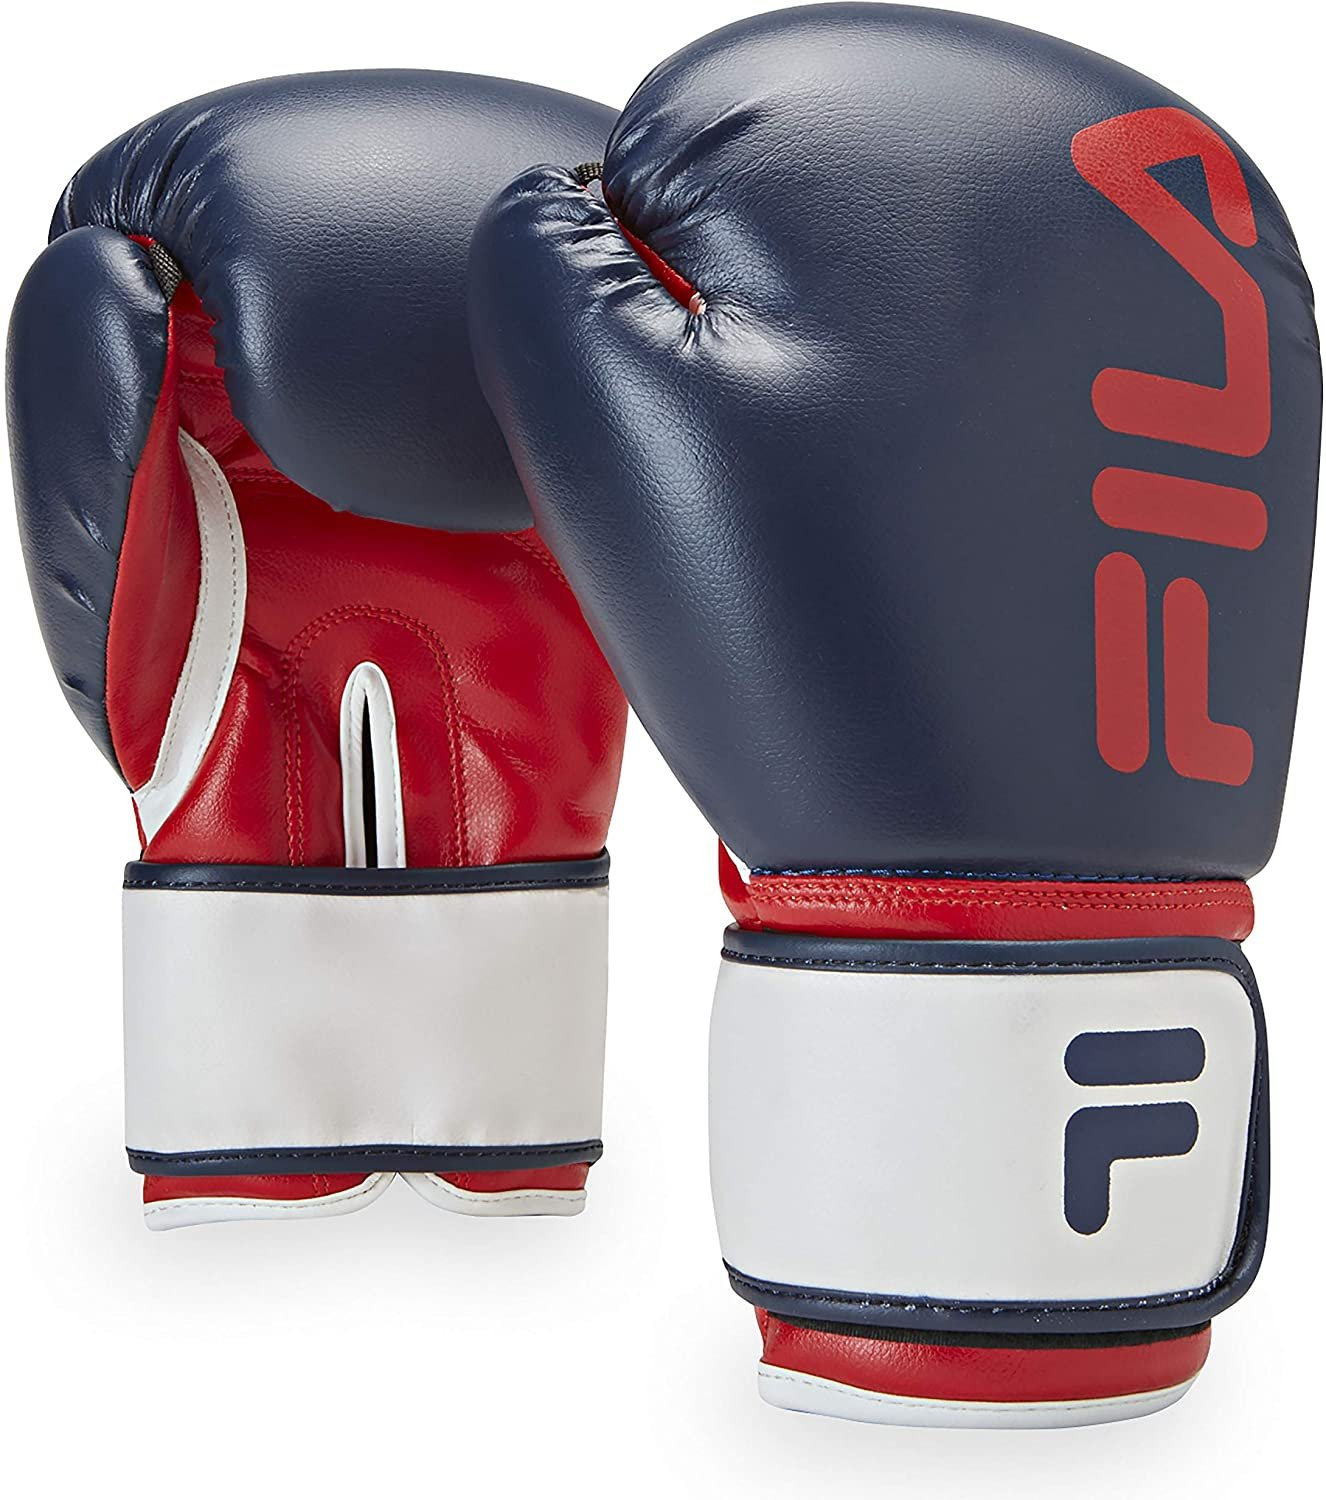 Superior Sparring Boxing Gloves Muay Thai Kickboxing gloves MMA training Pro